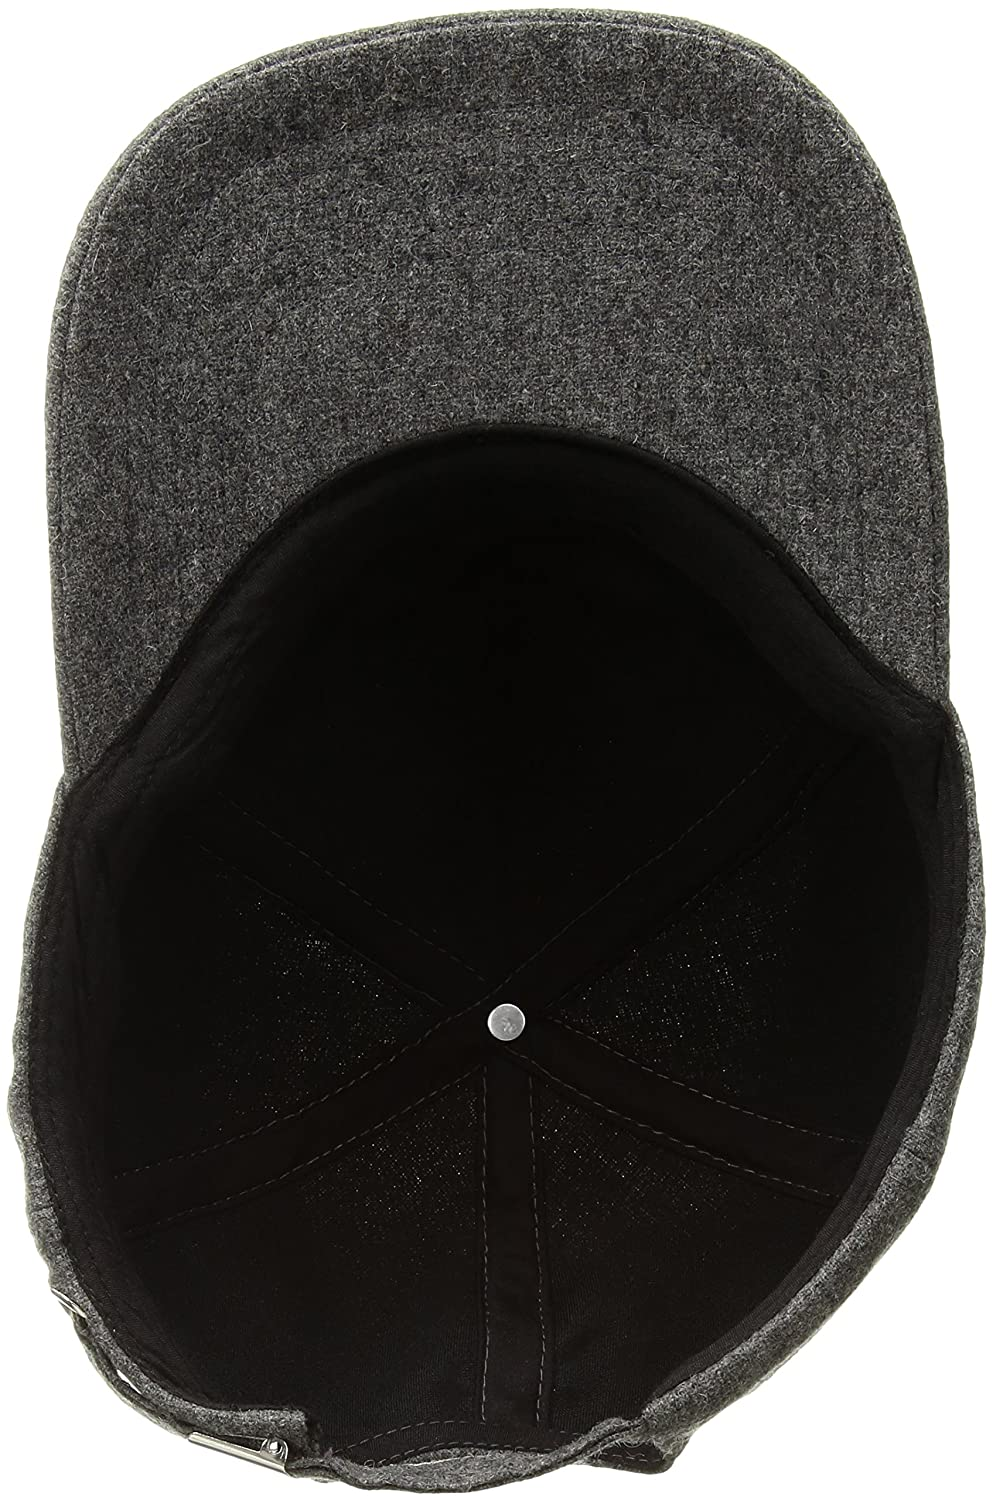 60a423df Tommy Hilfiger Men's Cold Weather Cap, Black Bean One Size at Amazon Men's  Clothing store: